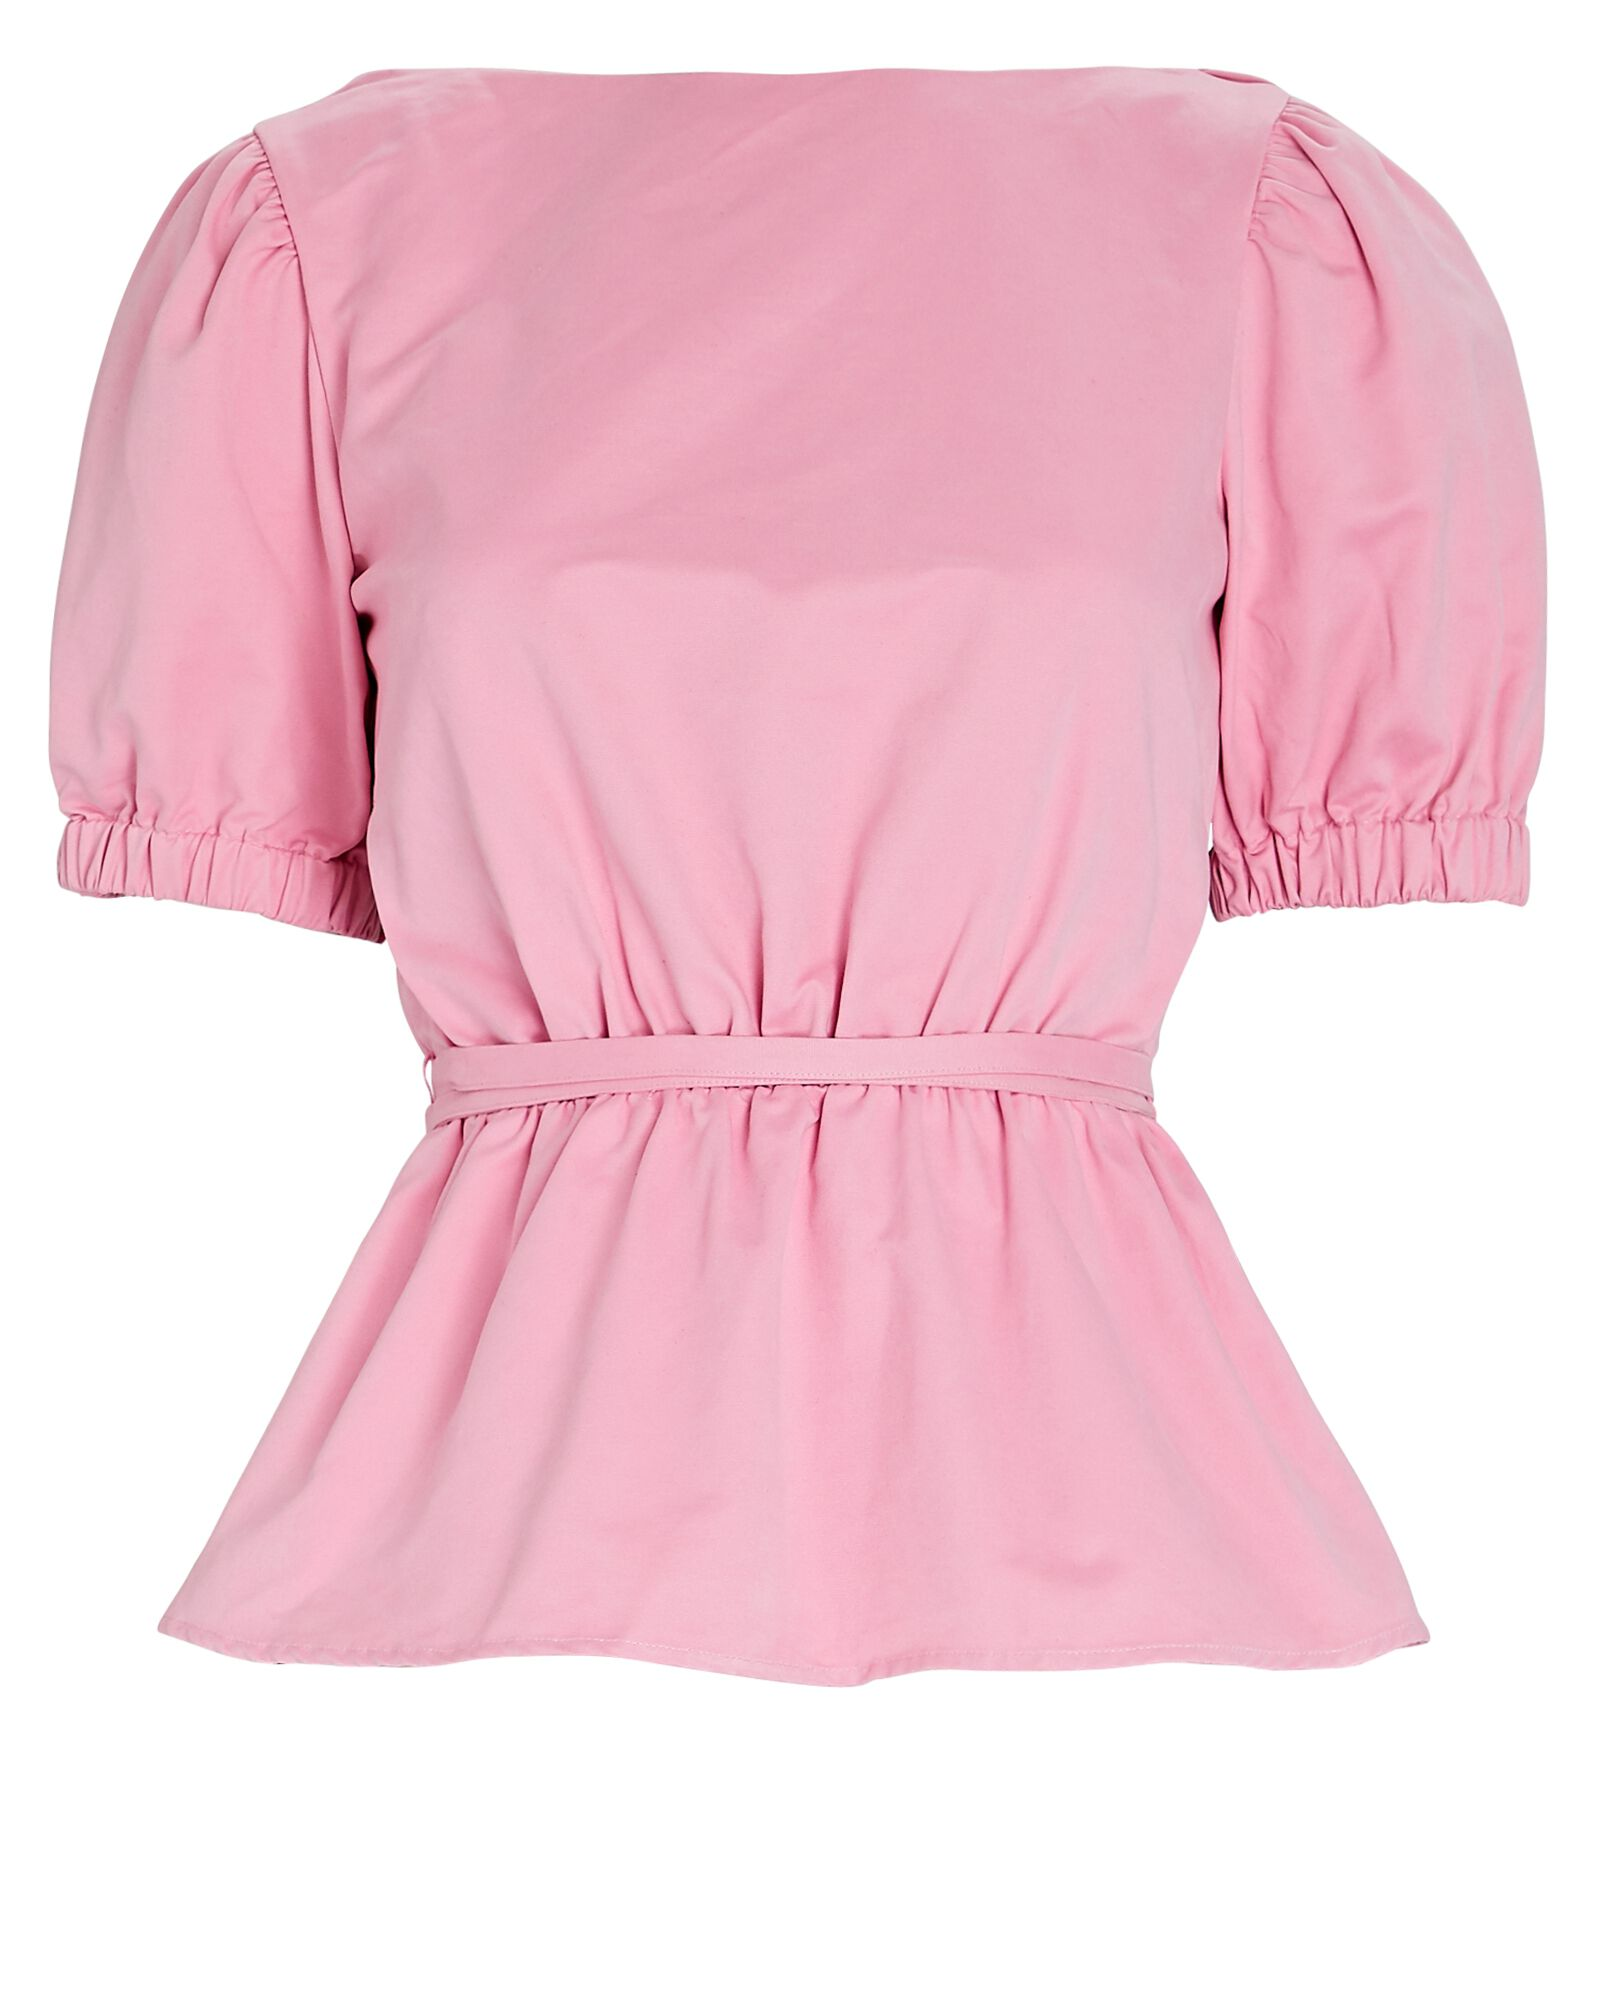 Marie Puff Sleeve Poplin Top, PINK, hi-res